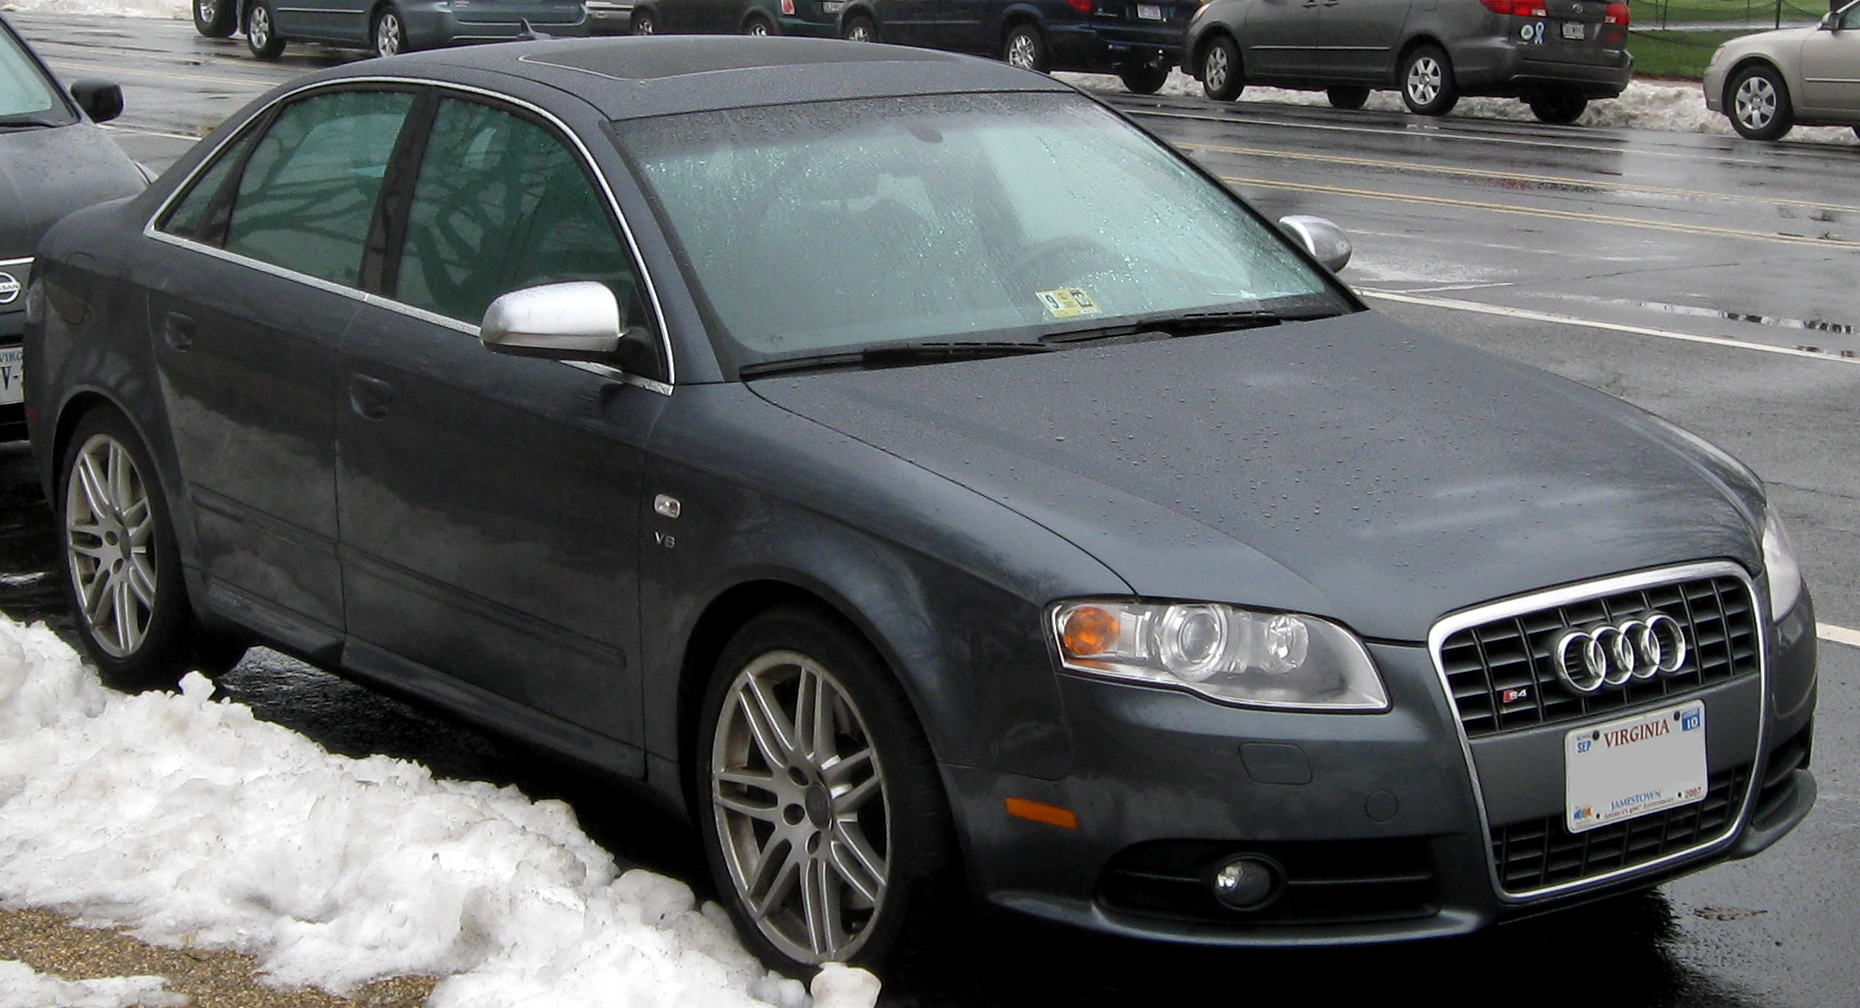 File Audi S4 Sedan B7 12 26 2009 Jpg Wikimedia Commons